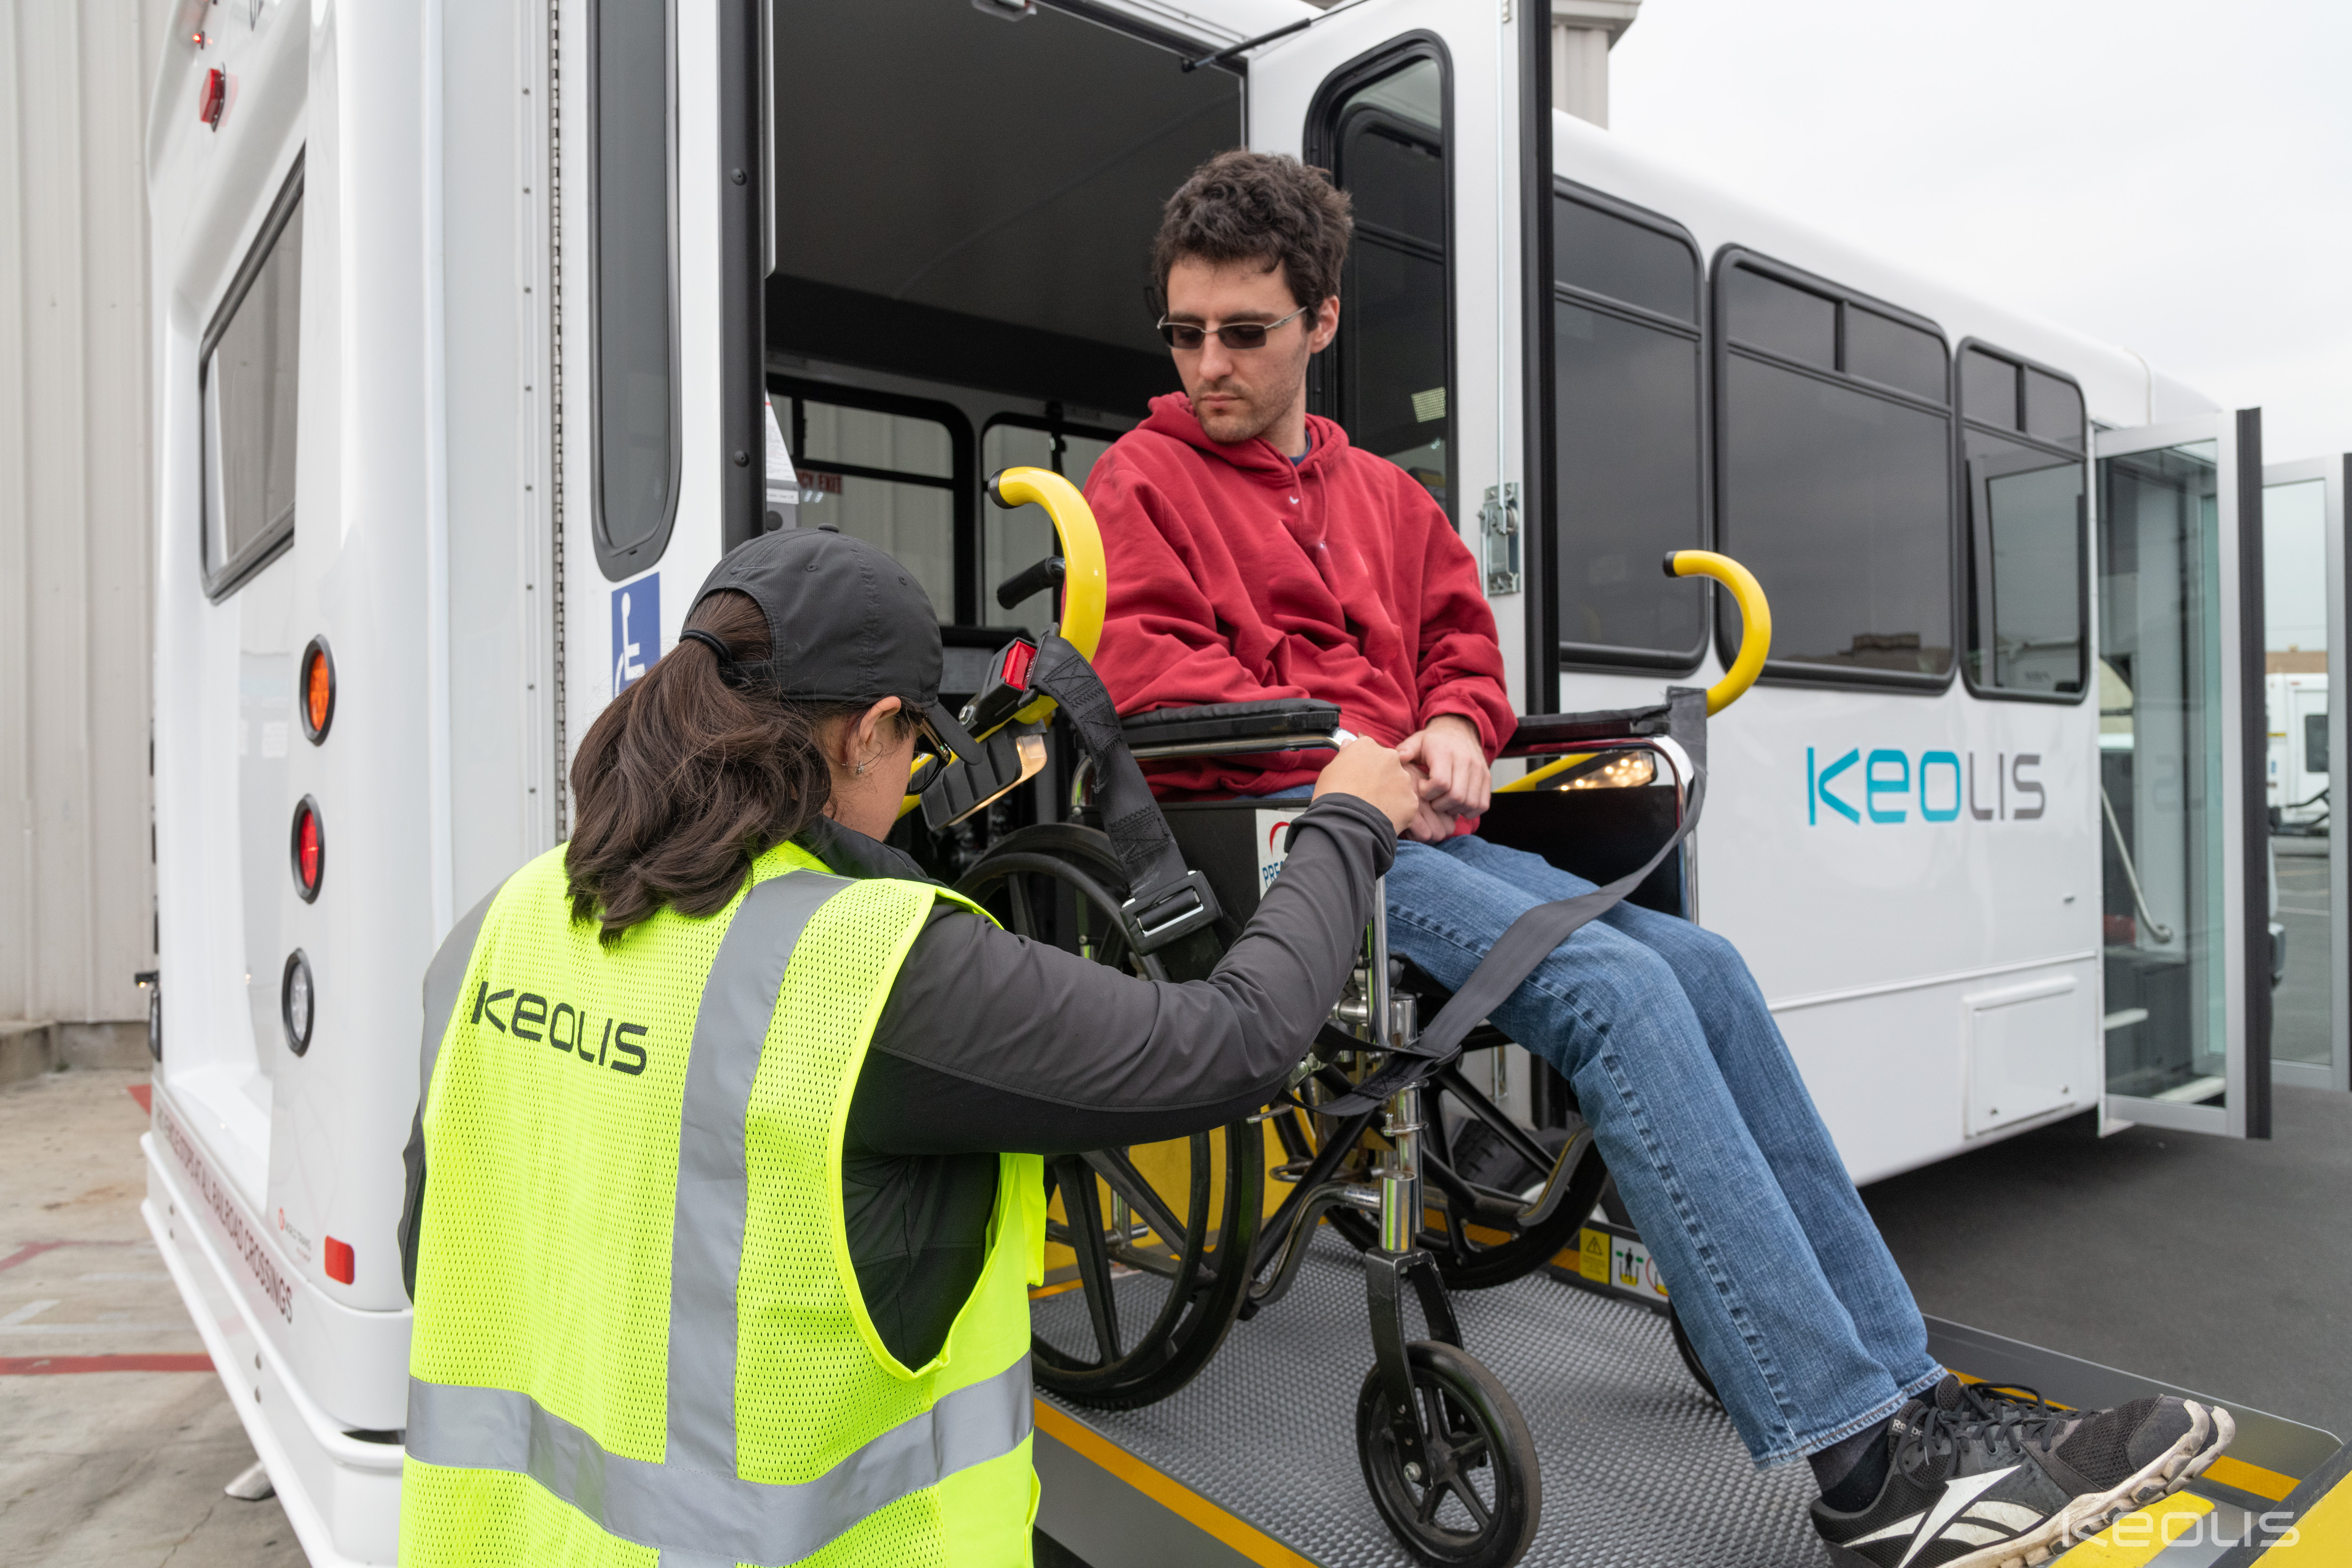 Van Nuys_Loading Passenger with Wheelchair